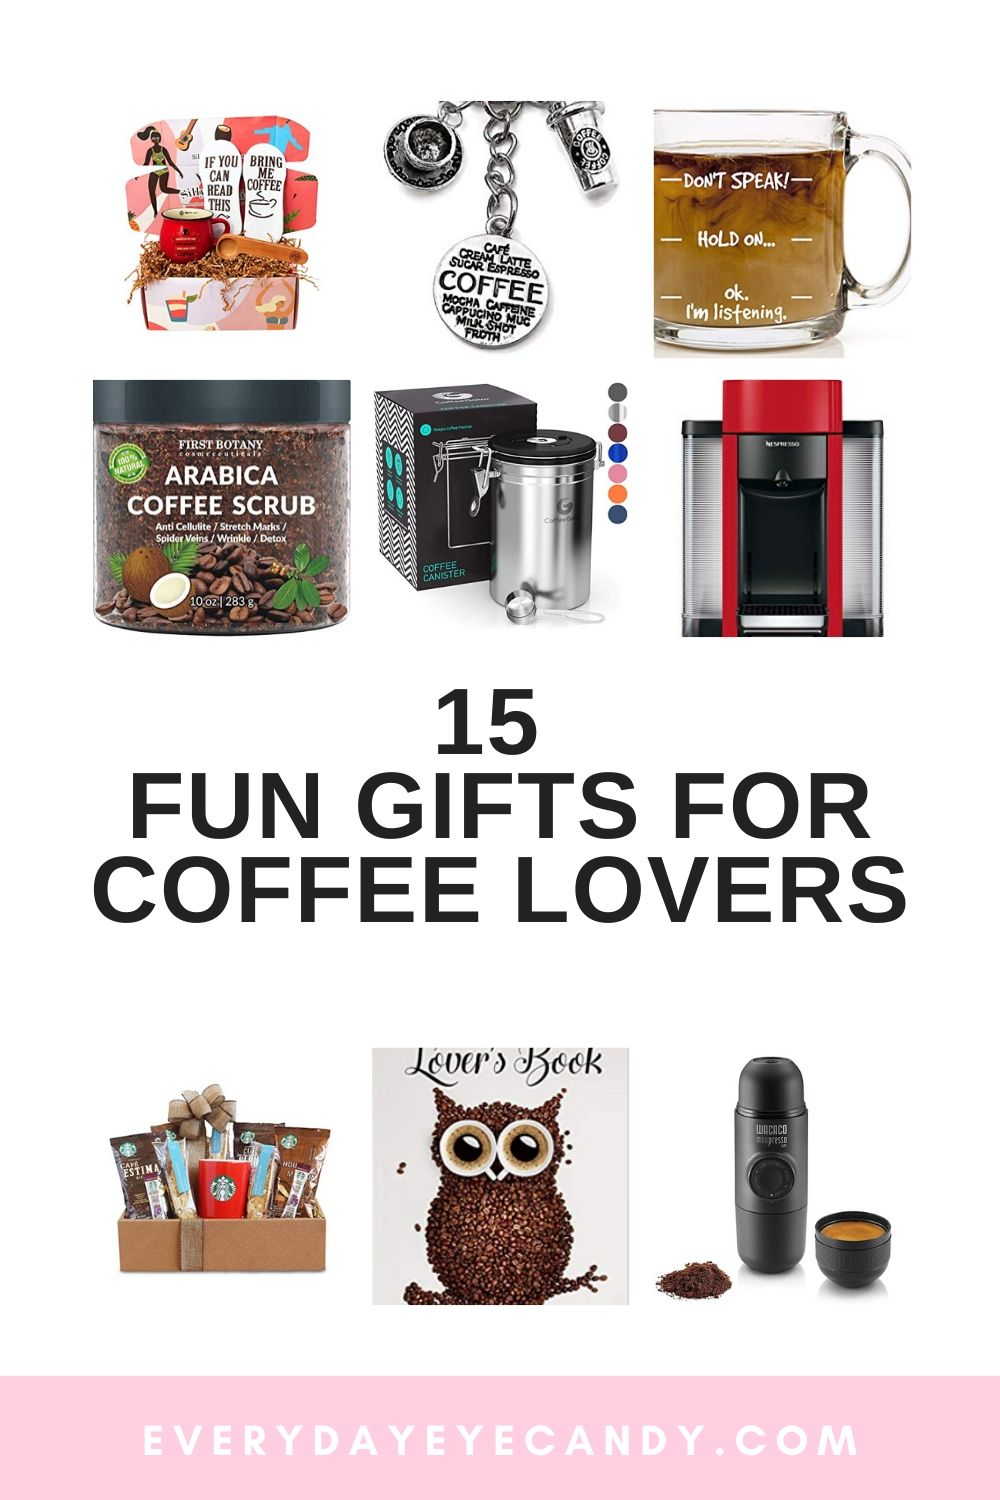 15 Fun Gifts for Coffee Lovers